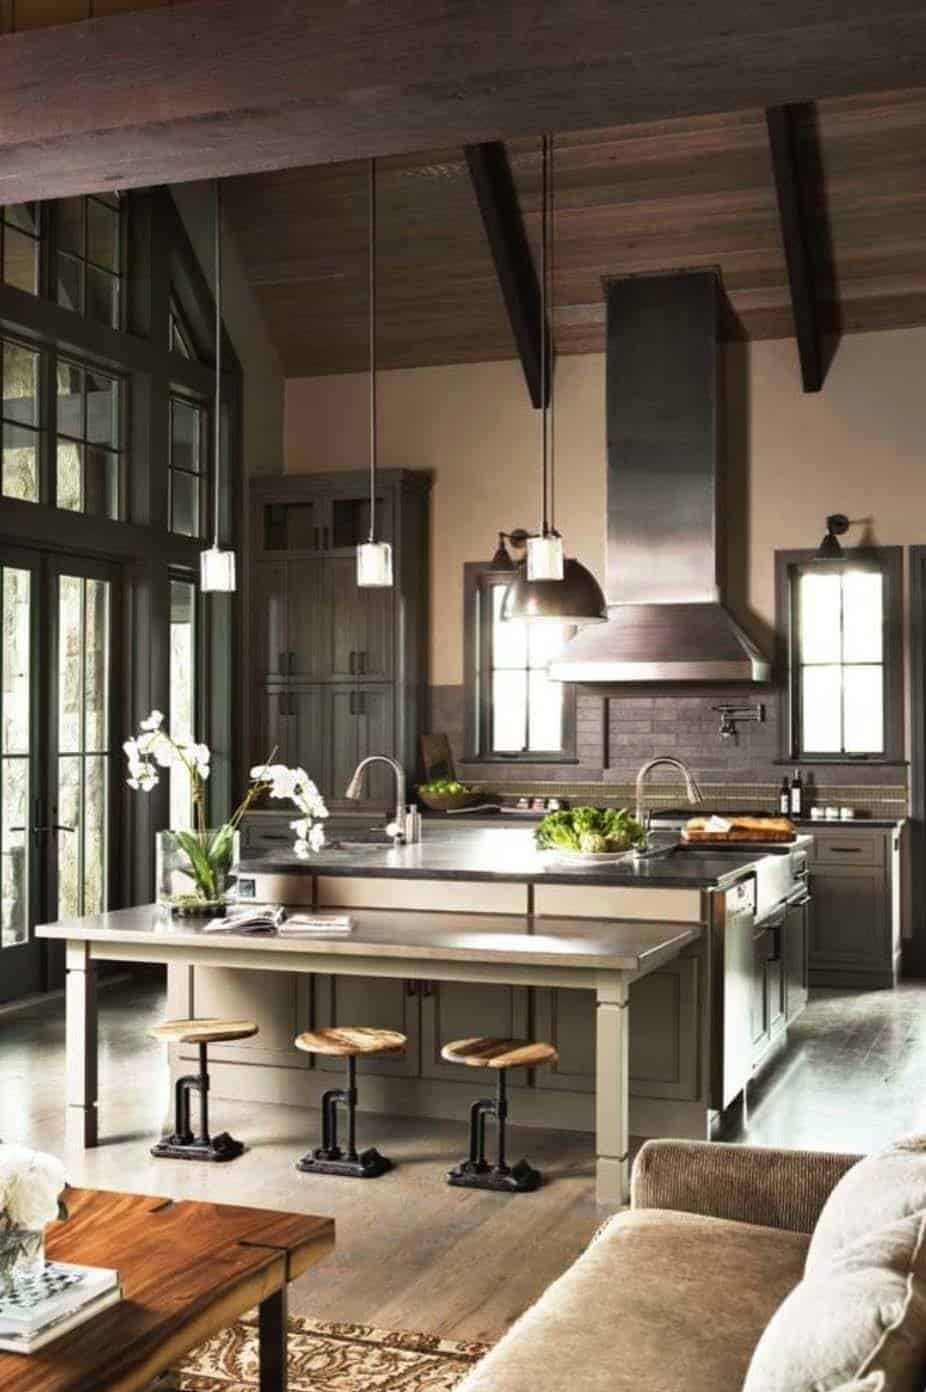 Kitchen Island Ideas-14-1 Kindesign